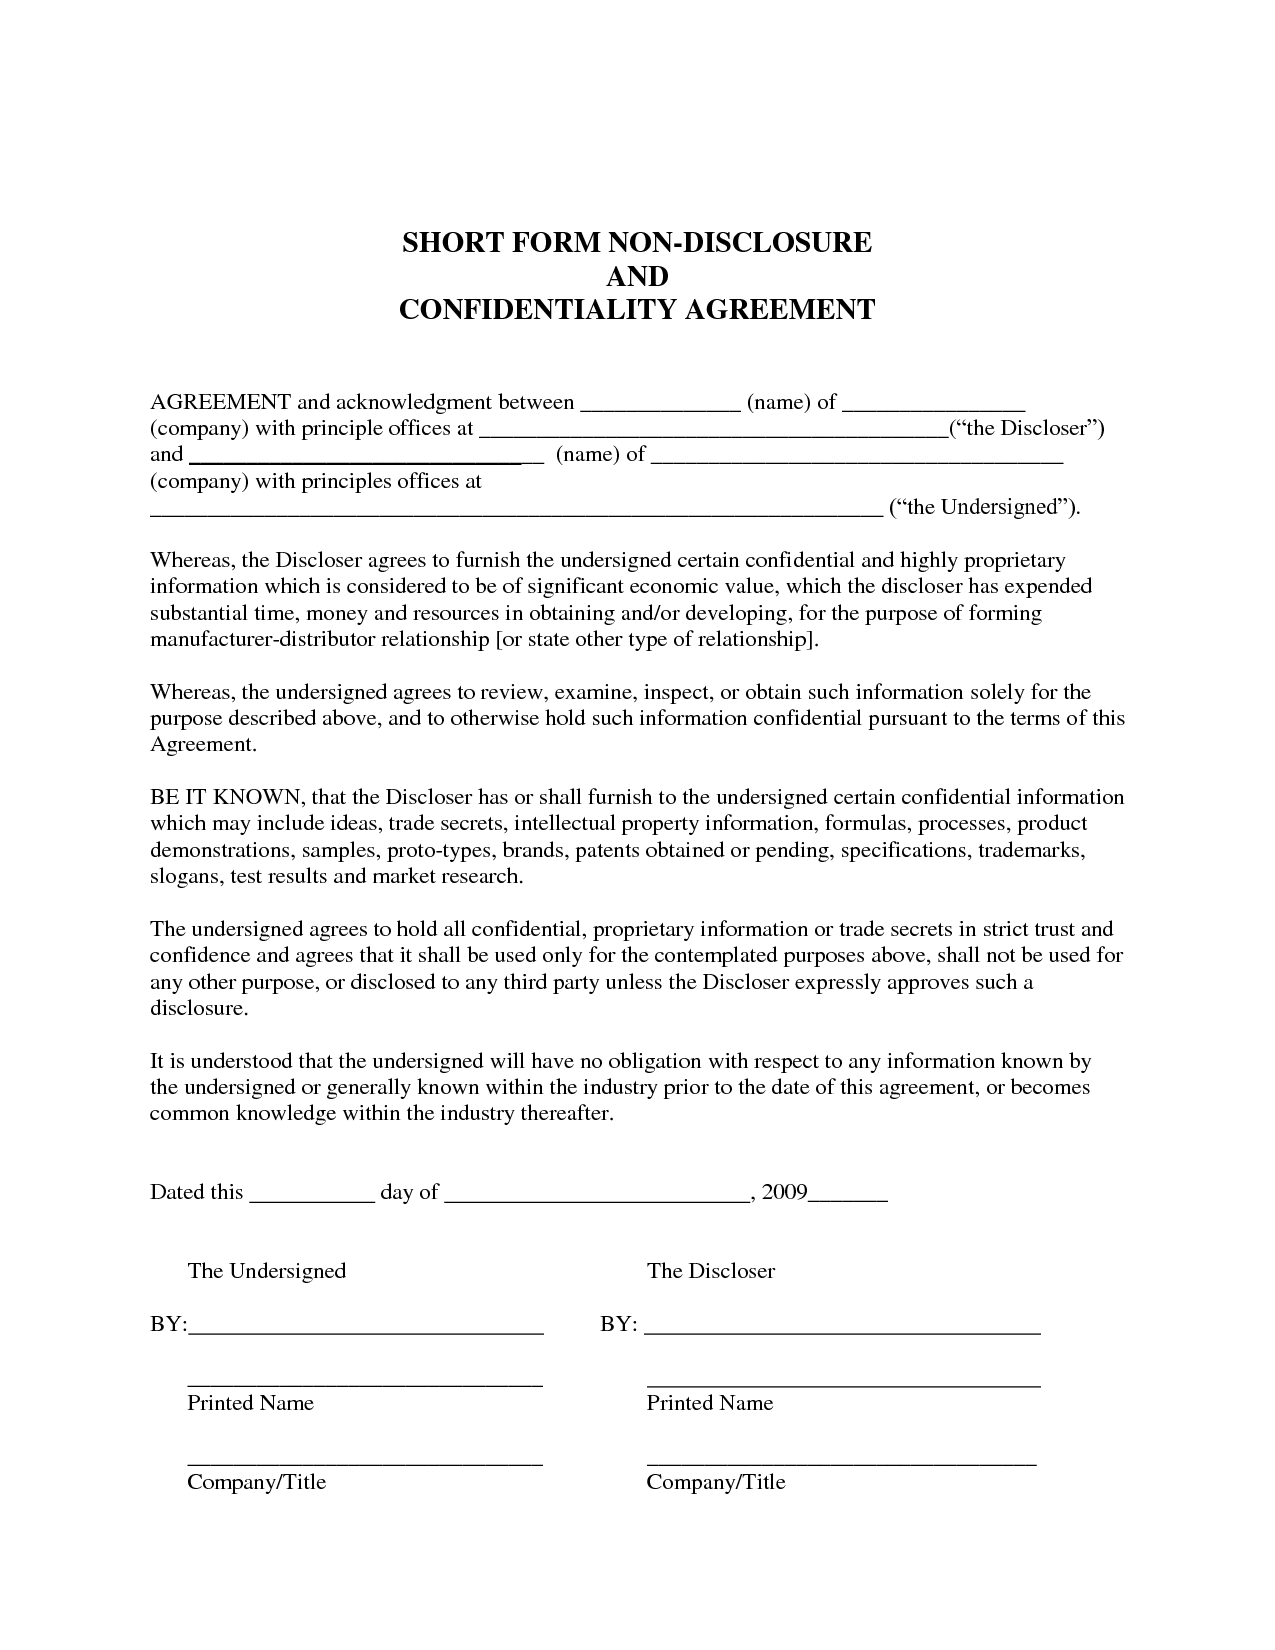 Confidentiality Agreement Free Template Sample Nondisclosure Agreement  Confidentiality Agreement Sample .